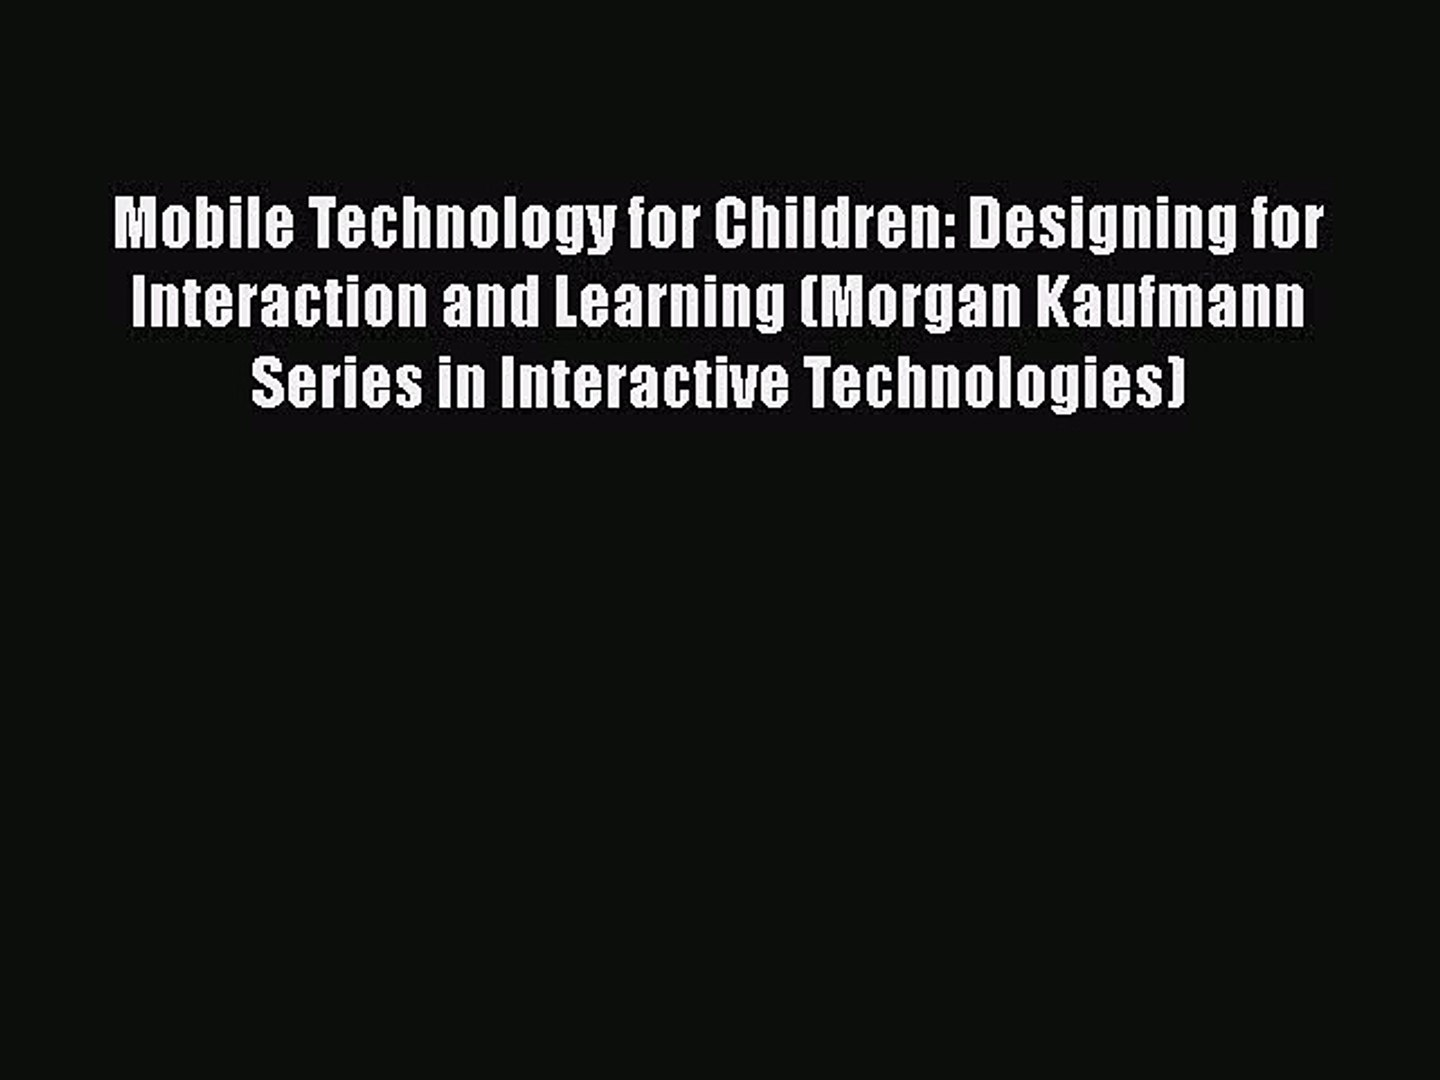 Download Mobile Technology for Children: Designing for Interaction and Learning (Morgan Kaufmann